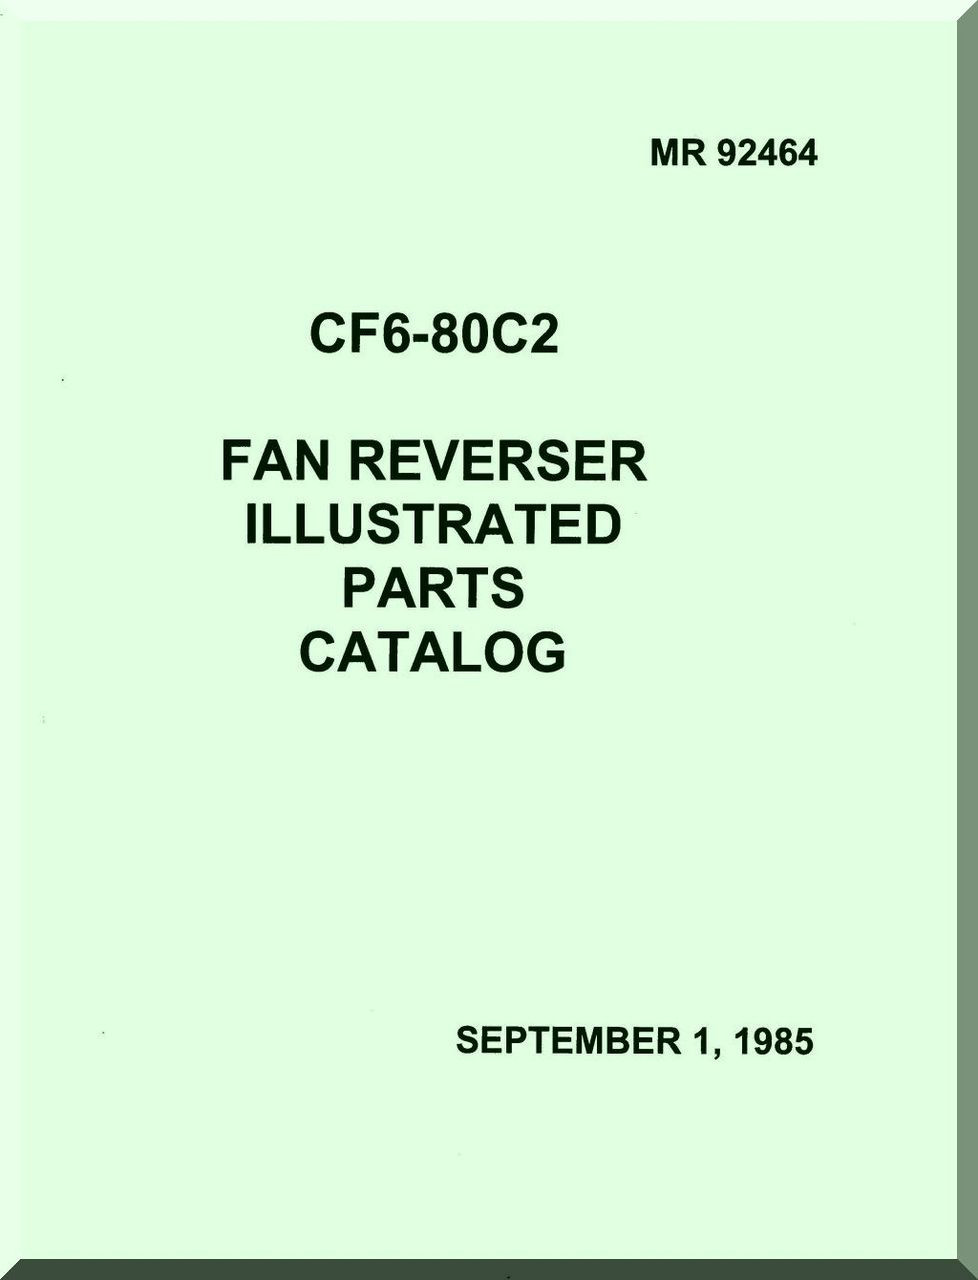 General Electric CF6-80C2 Aircraft Jet Engine Fan reverser Illustrated  Parts Catalog Manual ( English Language ) -1985 MR 92464